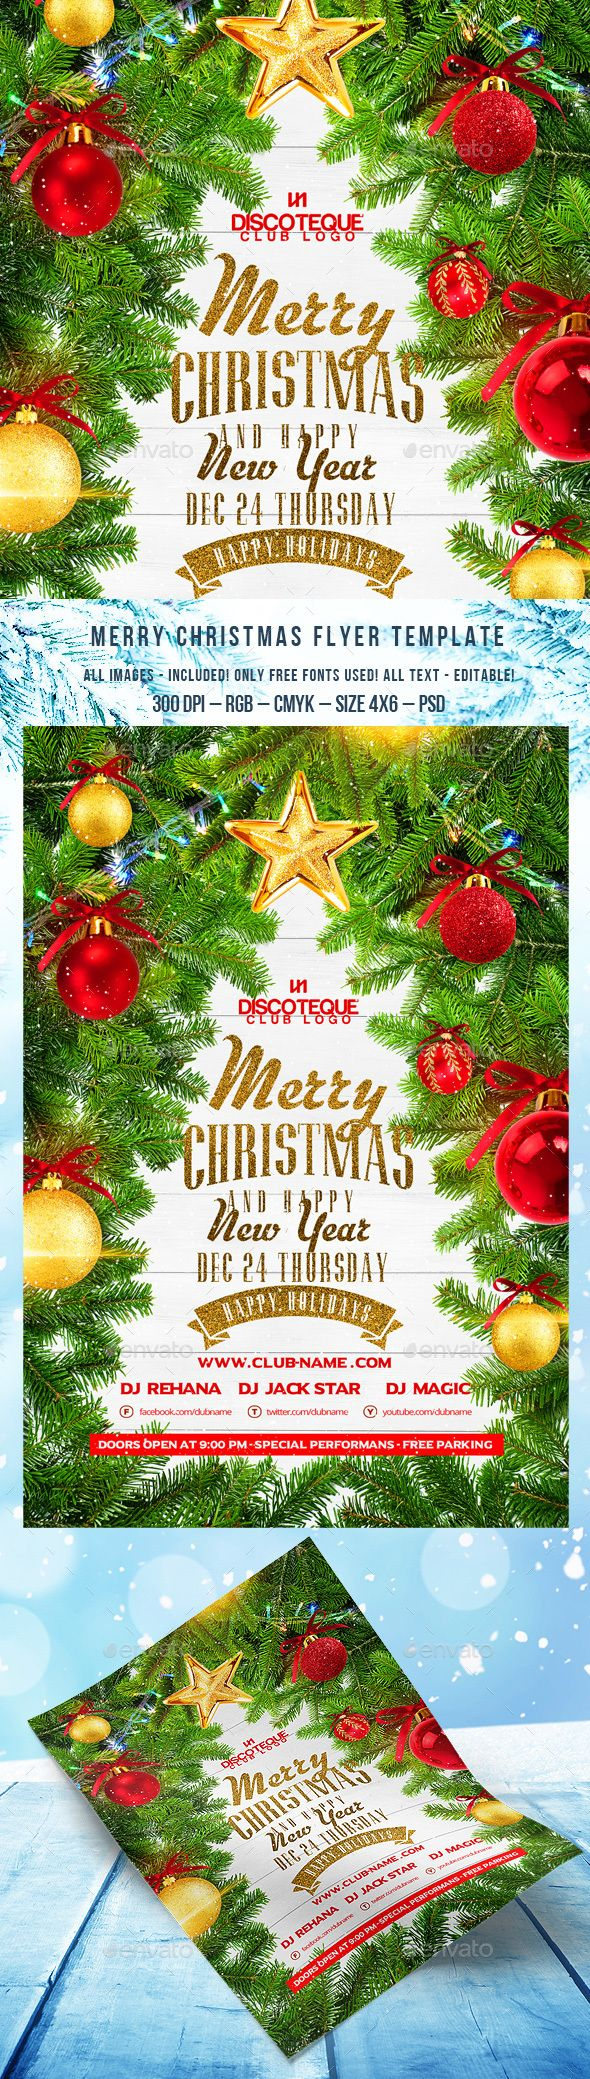 File infoChristmas Party Flyer Size 4x6 with